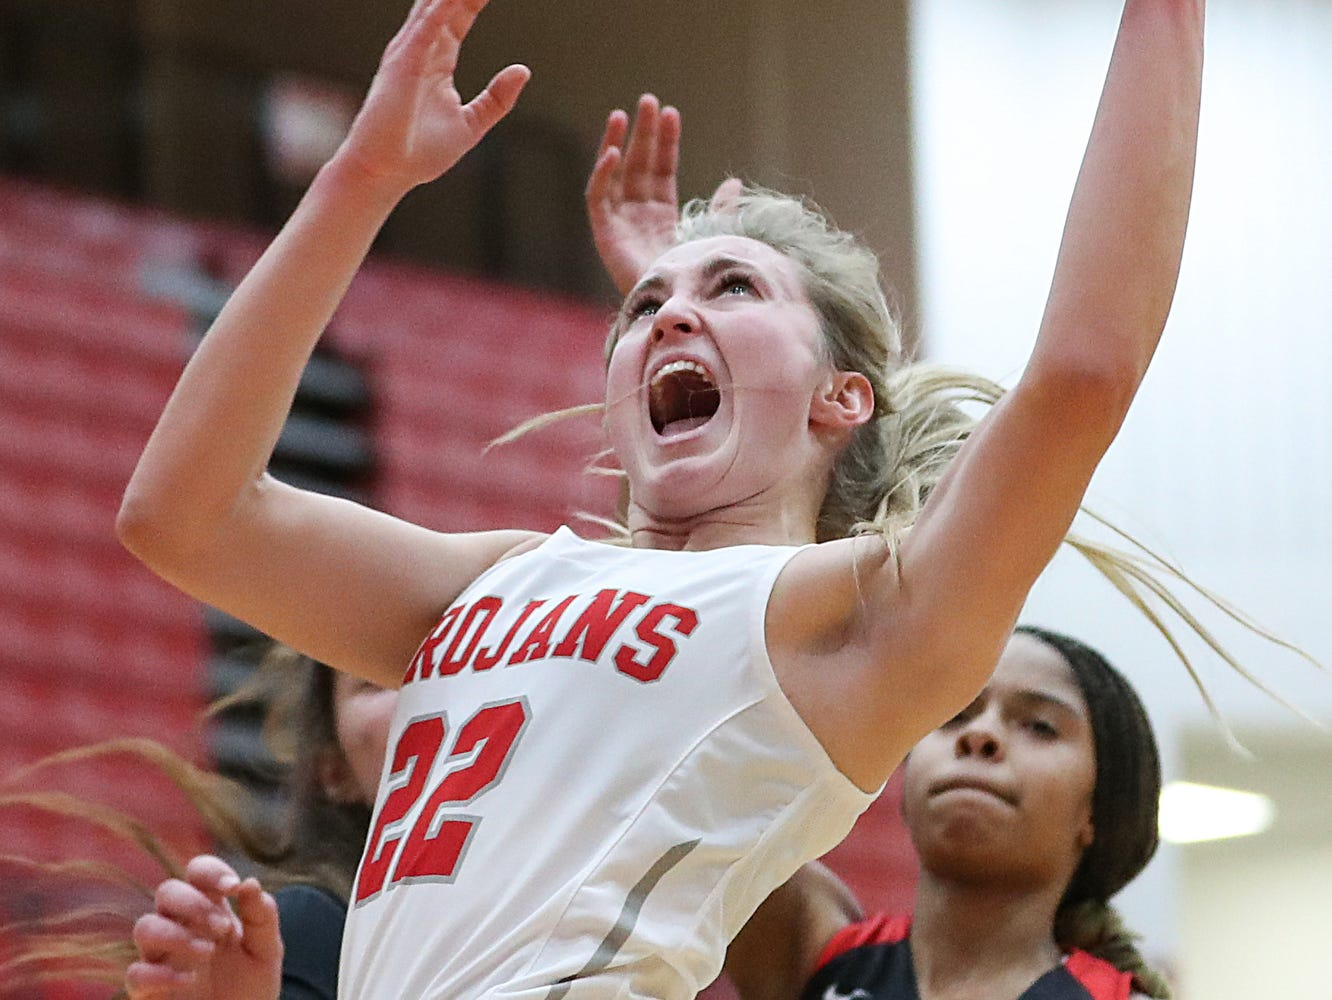 Center Grove Trojans Ella Thompson (22) shoots a layup in the first half of the game at Center Grove High School in Greenwood, Ind., Thursday, Jan. 10, 2019. Center Grove defeated North Central, 51-44.